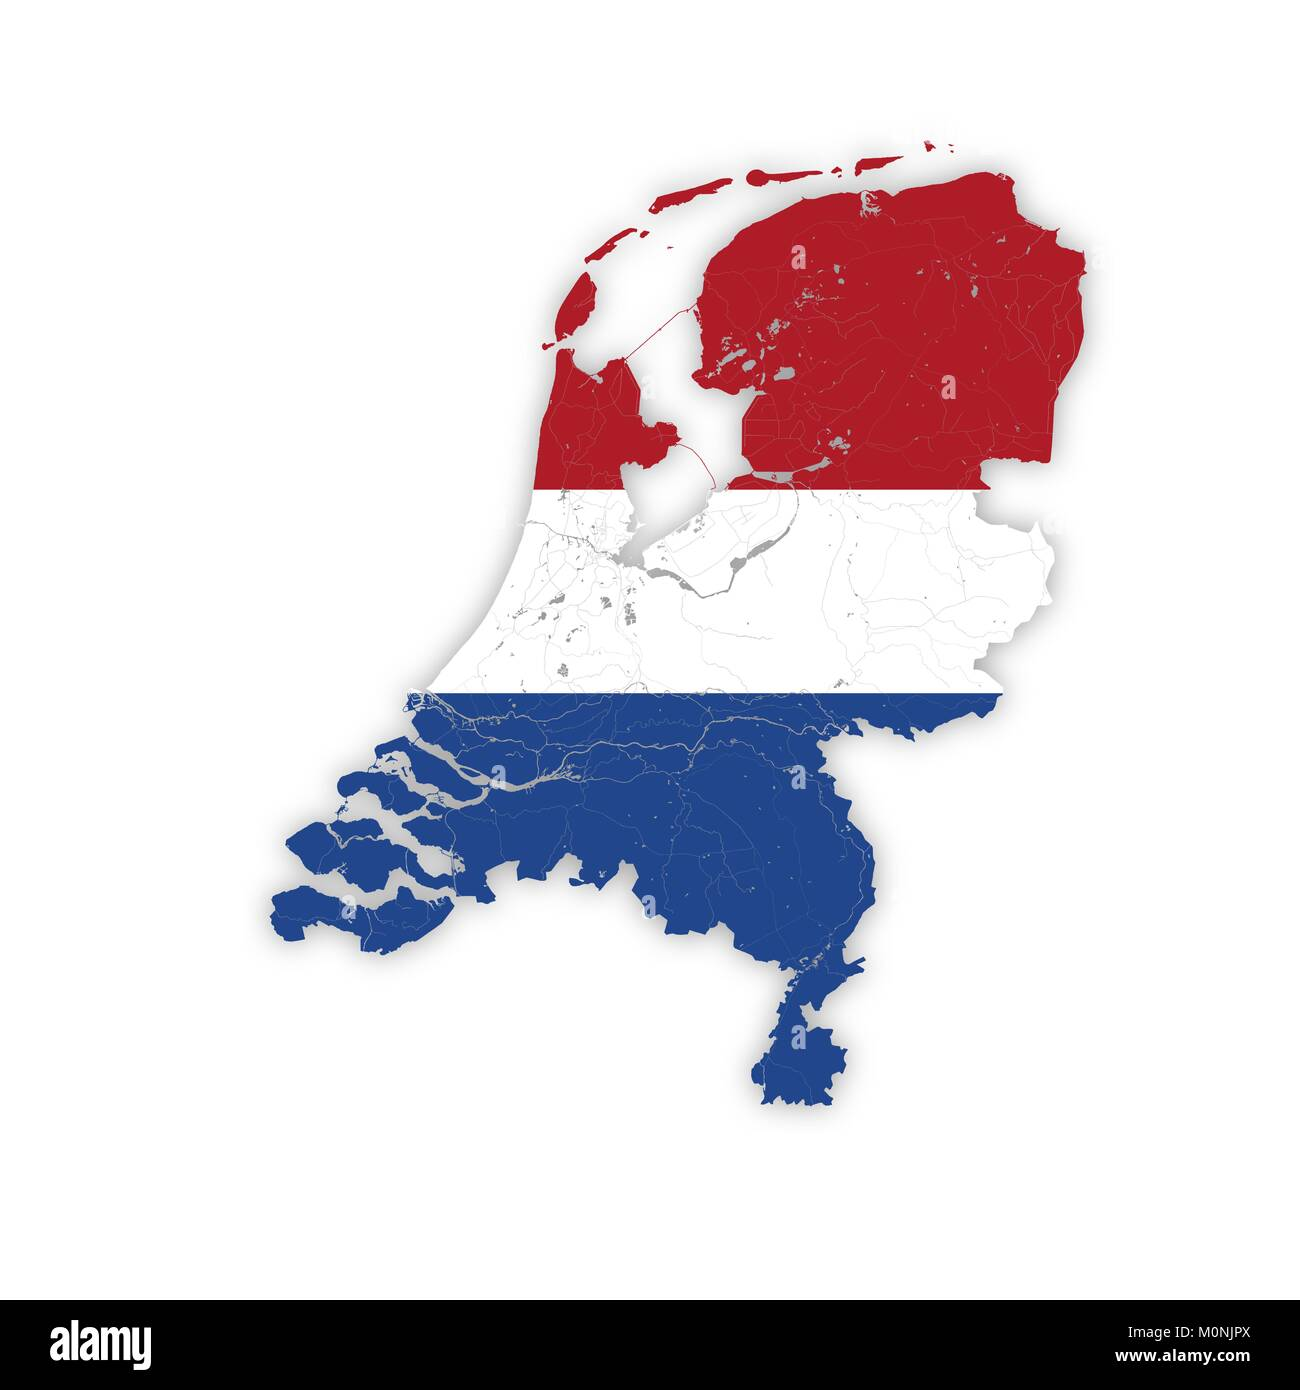 Map of Netherlands with rivers and lakes in colors of the national flags. Please look at my other images of cartographic - Stock Image